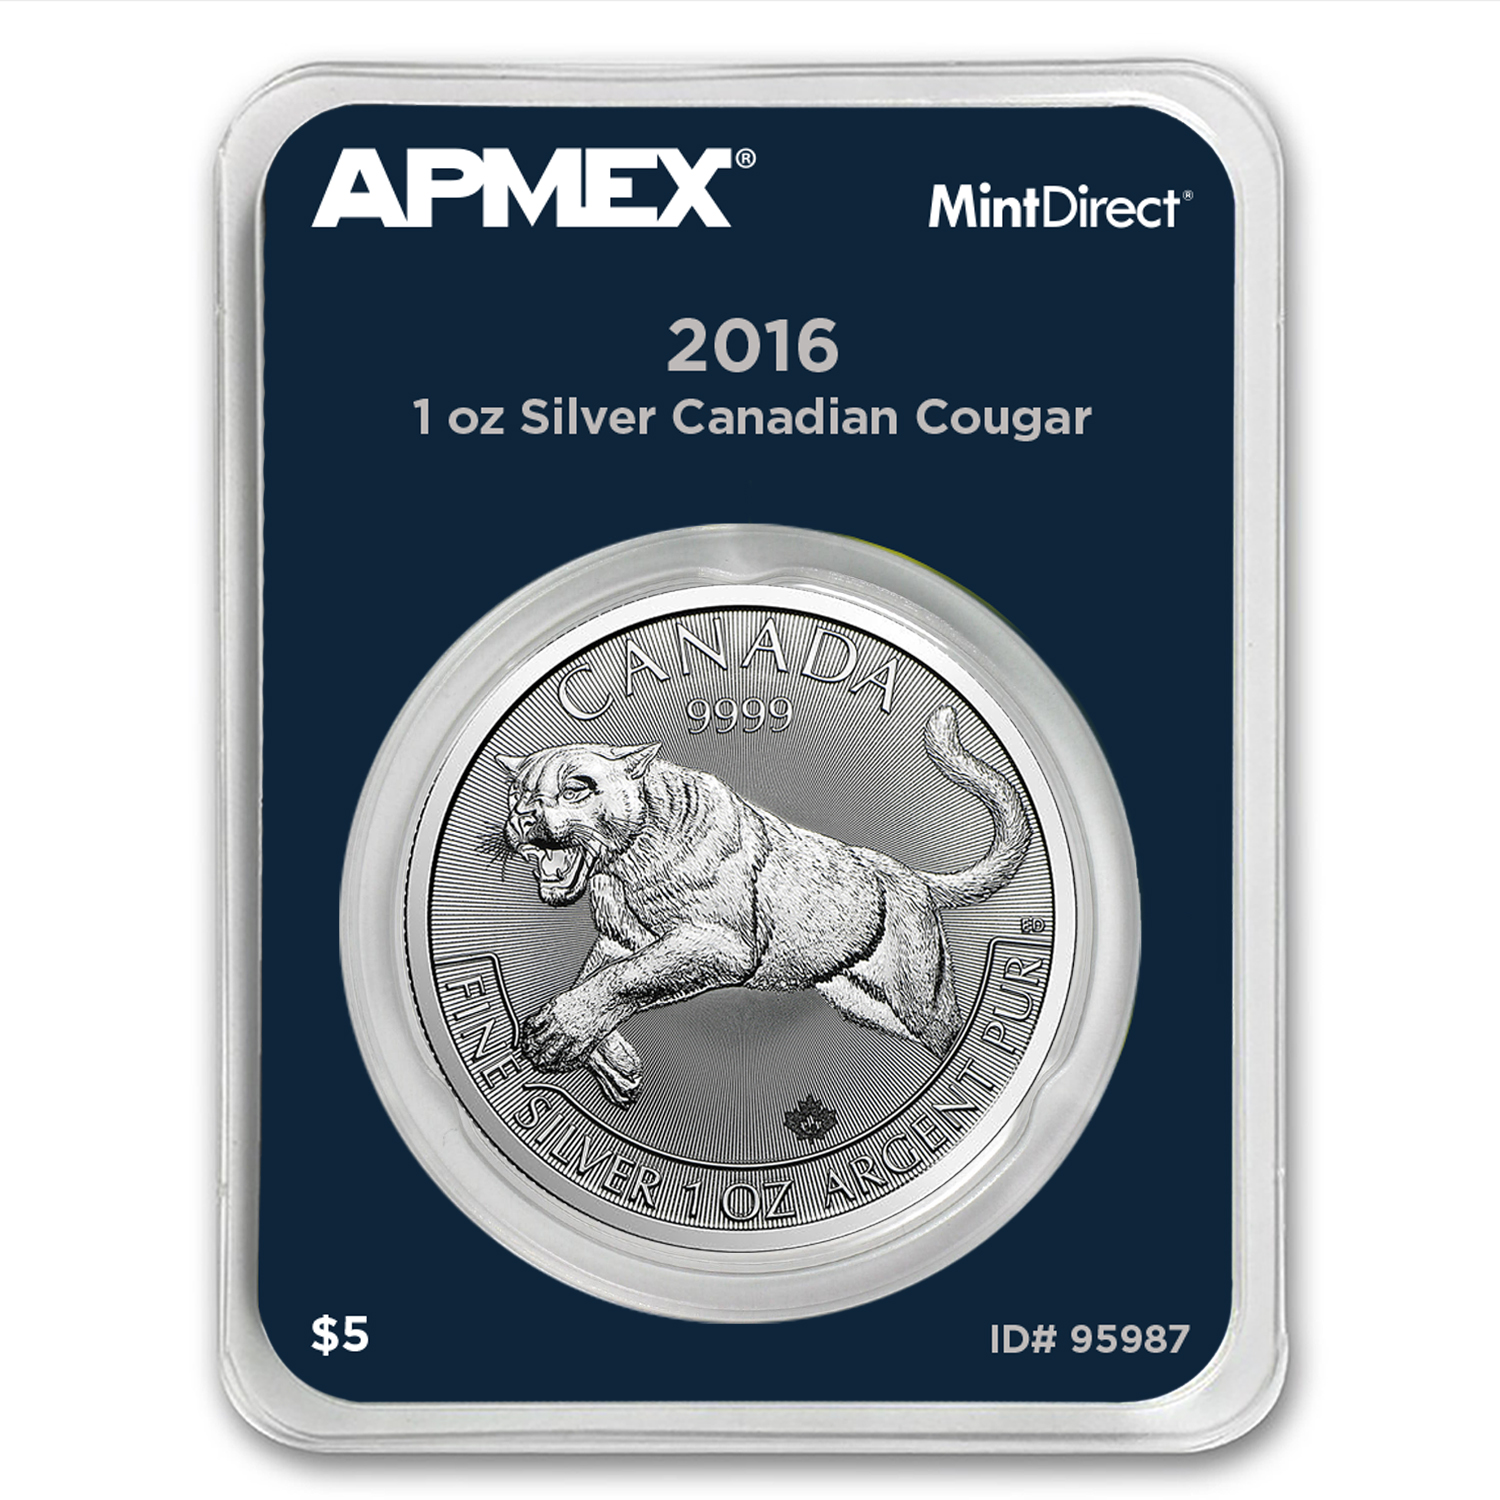 2016 RCM 1 oz Silver Predator Series Cougar (MintDirect® Single)